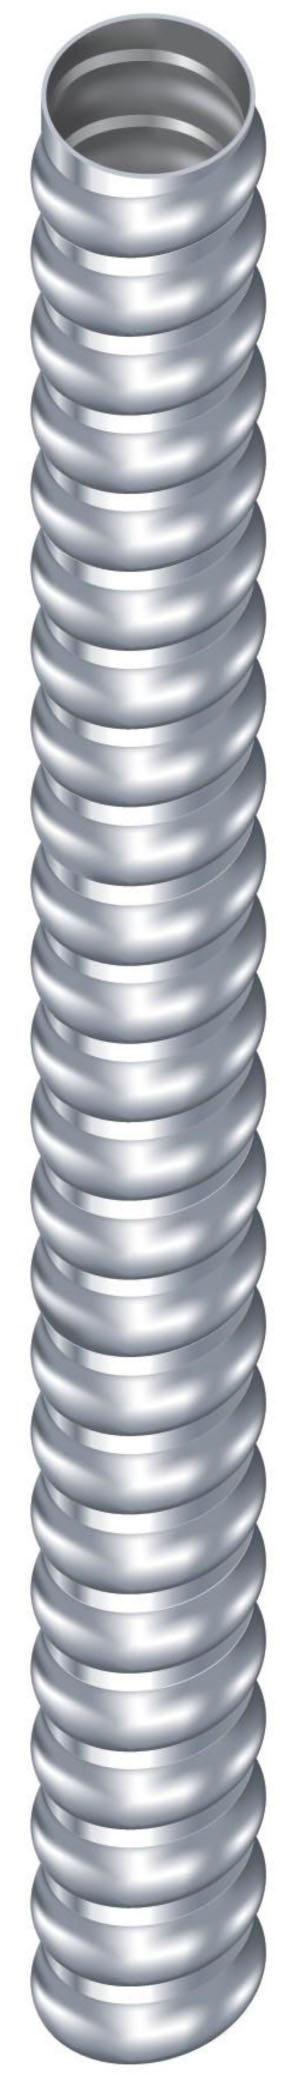 FAC 1/2 FLEX ALUMINUM CONDUIT (100FT COIL) 55082103